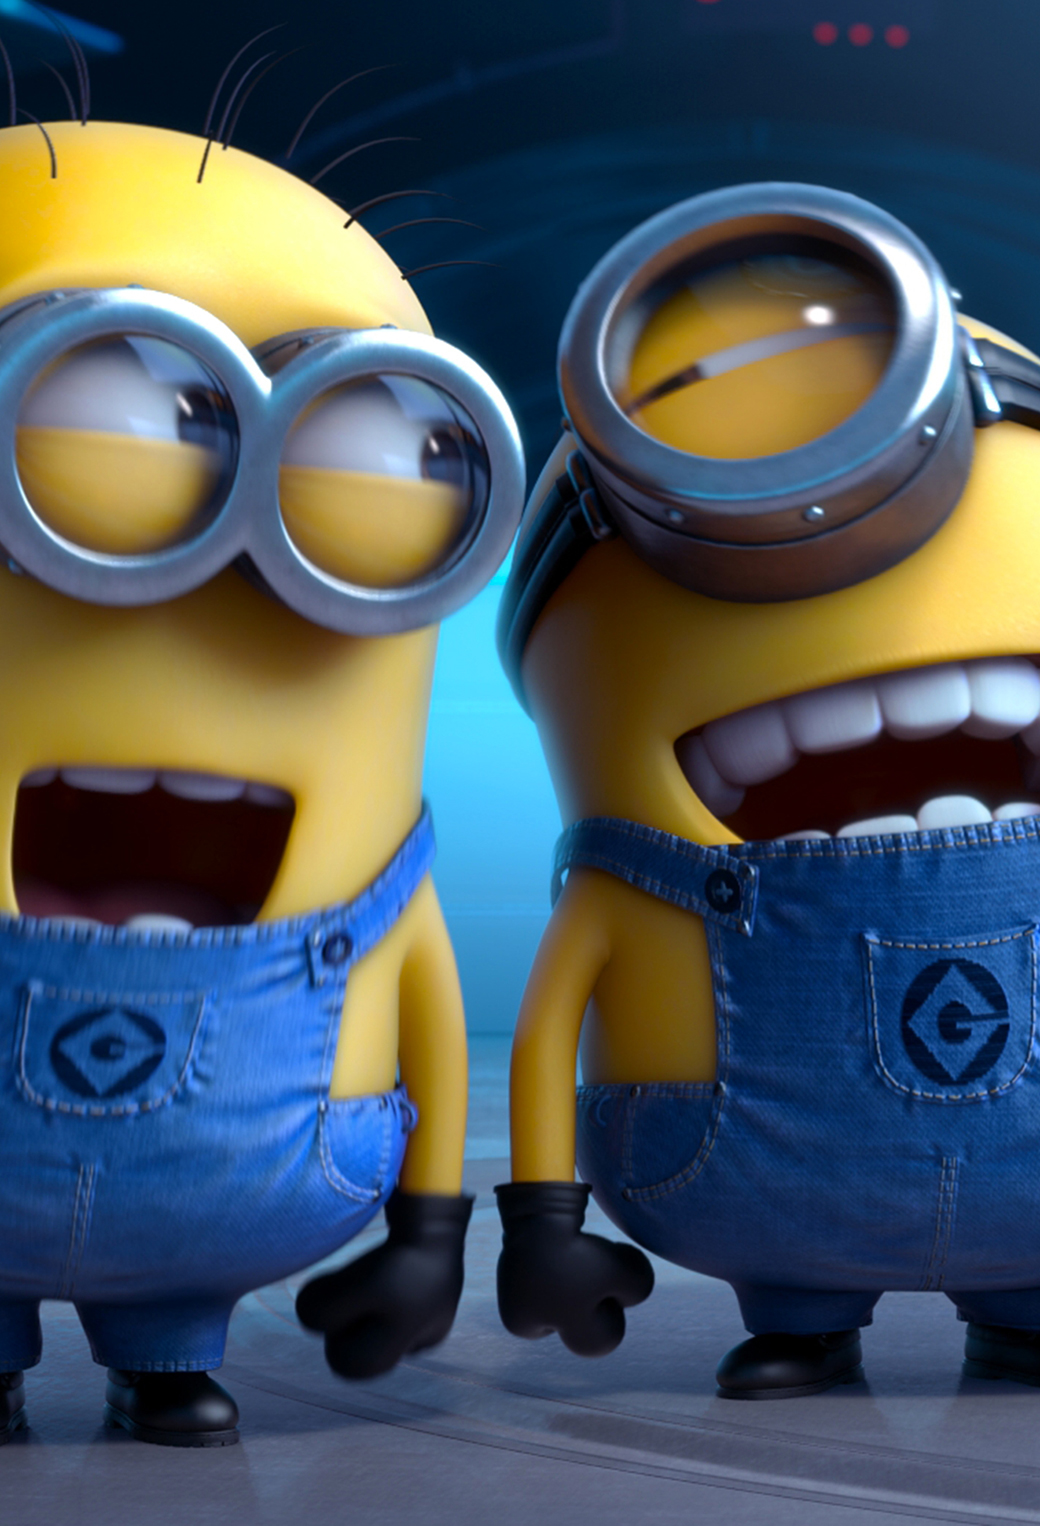 Despicable Me 2 Laughing 3Wallpapers iPhone Parallax Despicable Me 2 Laughing